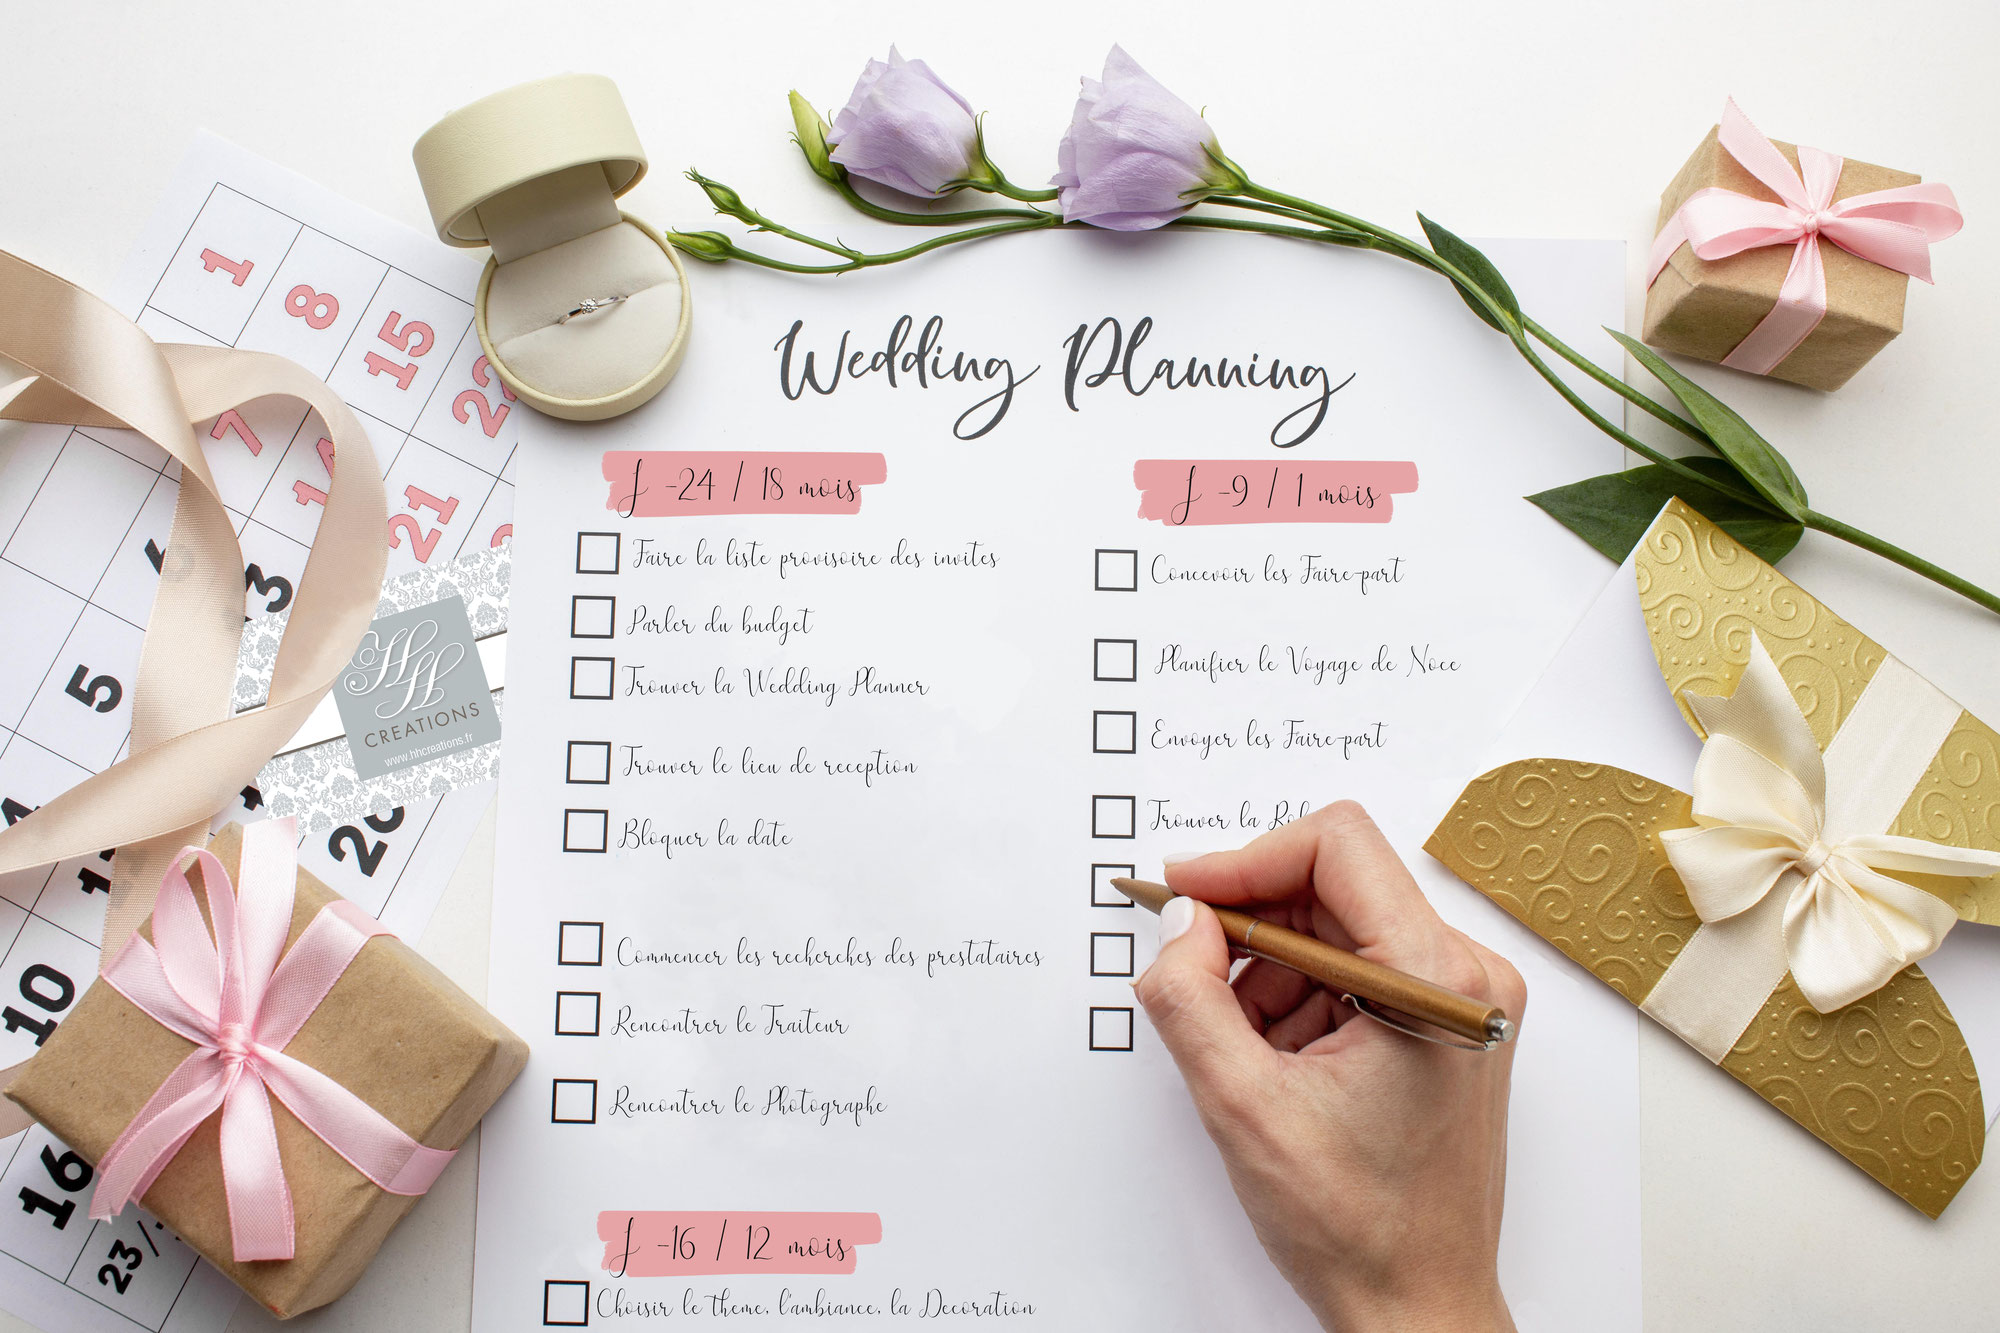 J'organise mon Mariage - Rétroplanning